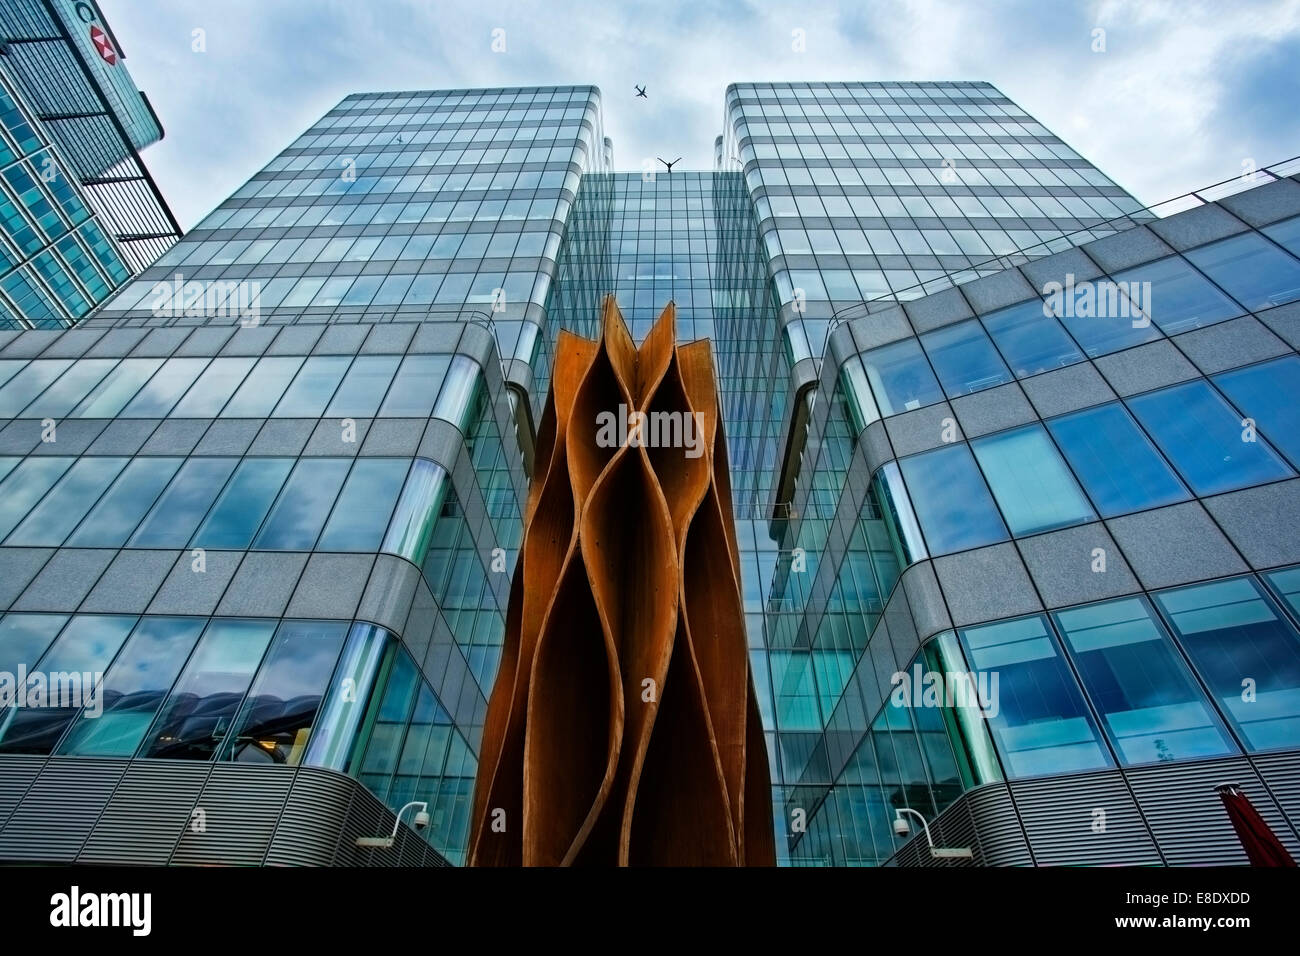 High rise buildings in the London Docklands aria of London - Stock Image